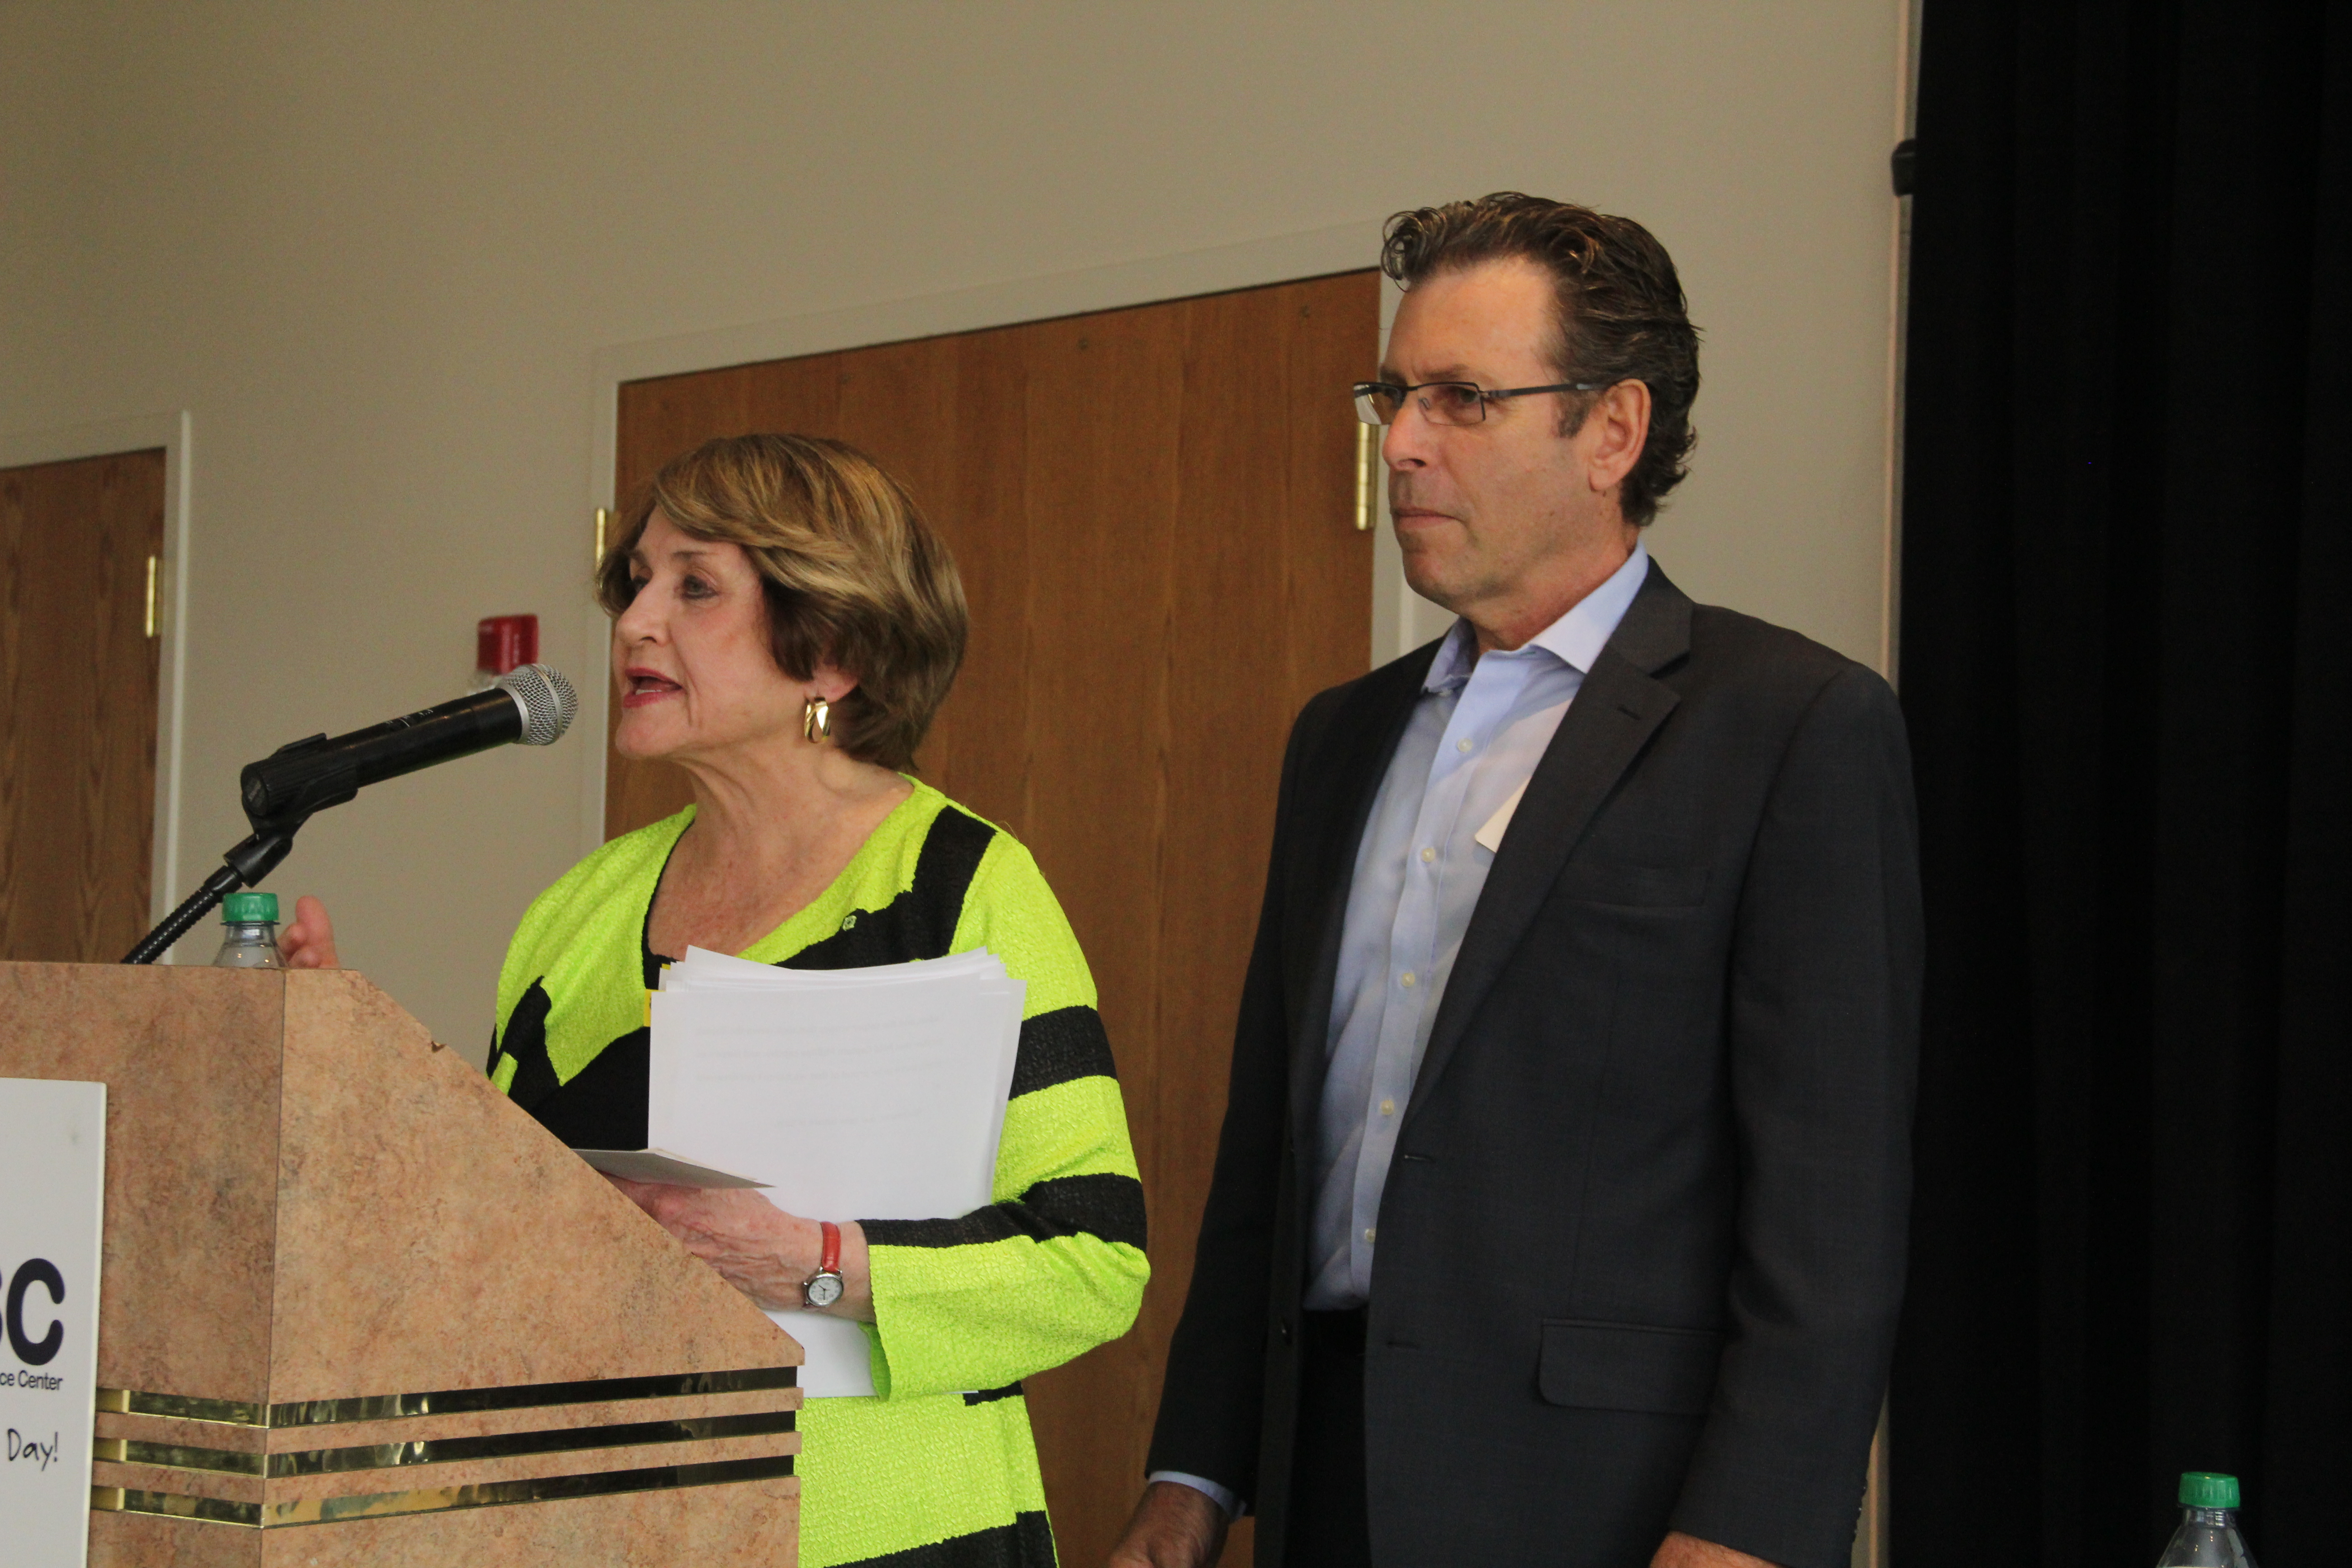 Congresswoman Louise Slaughter delivers opening remarks at RRPC's Annual Meeting Sept. 4 as RRPC Executive Director Tom Battley looks on.